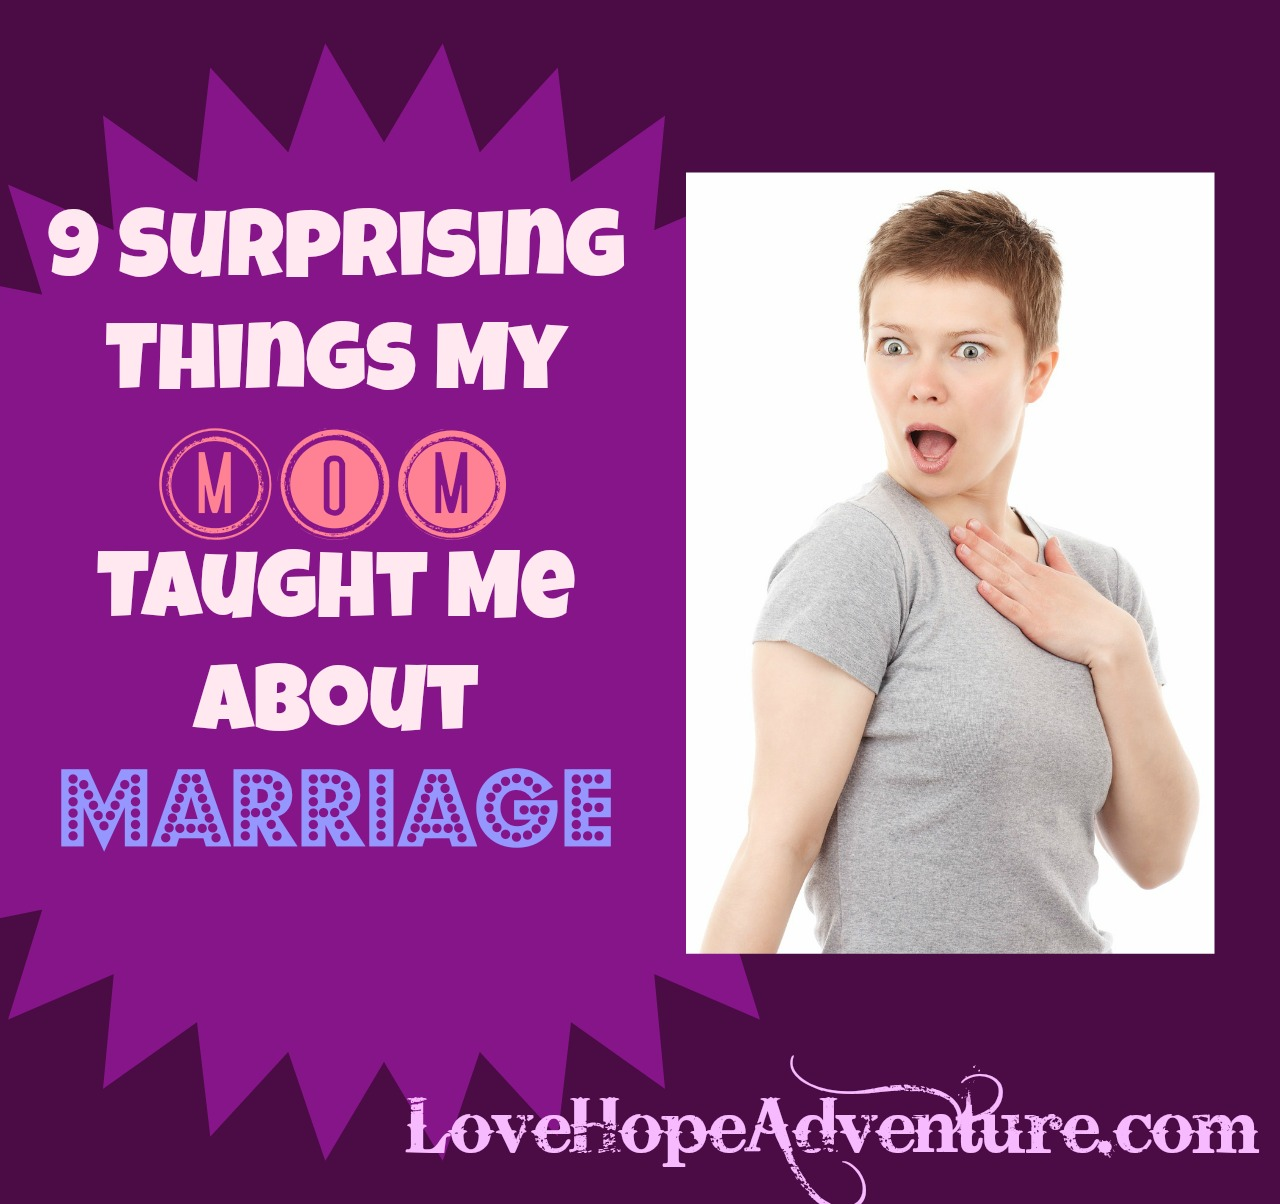 9 surprising things my mom taught me about marraige